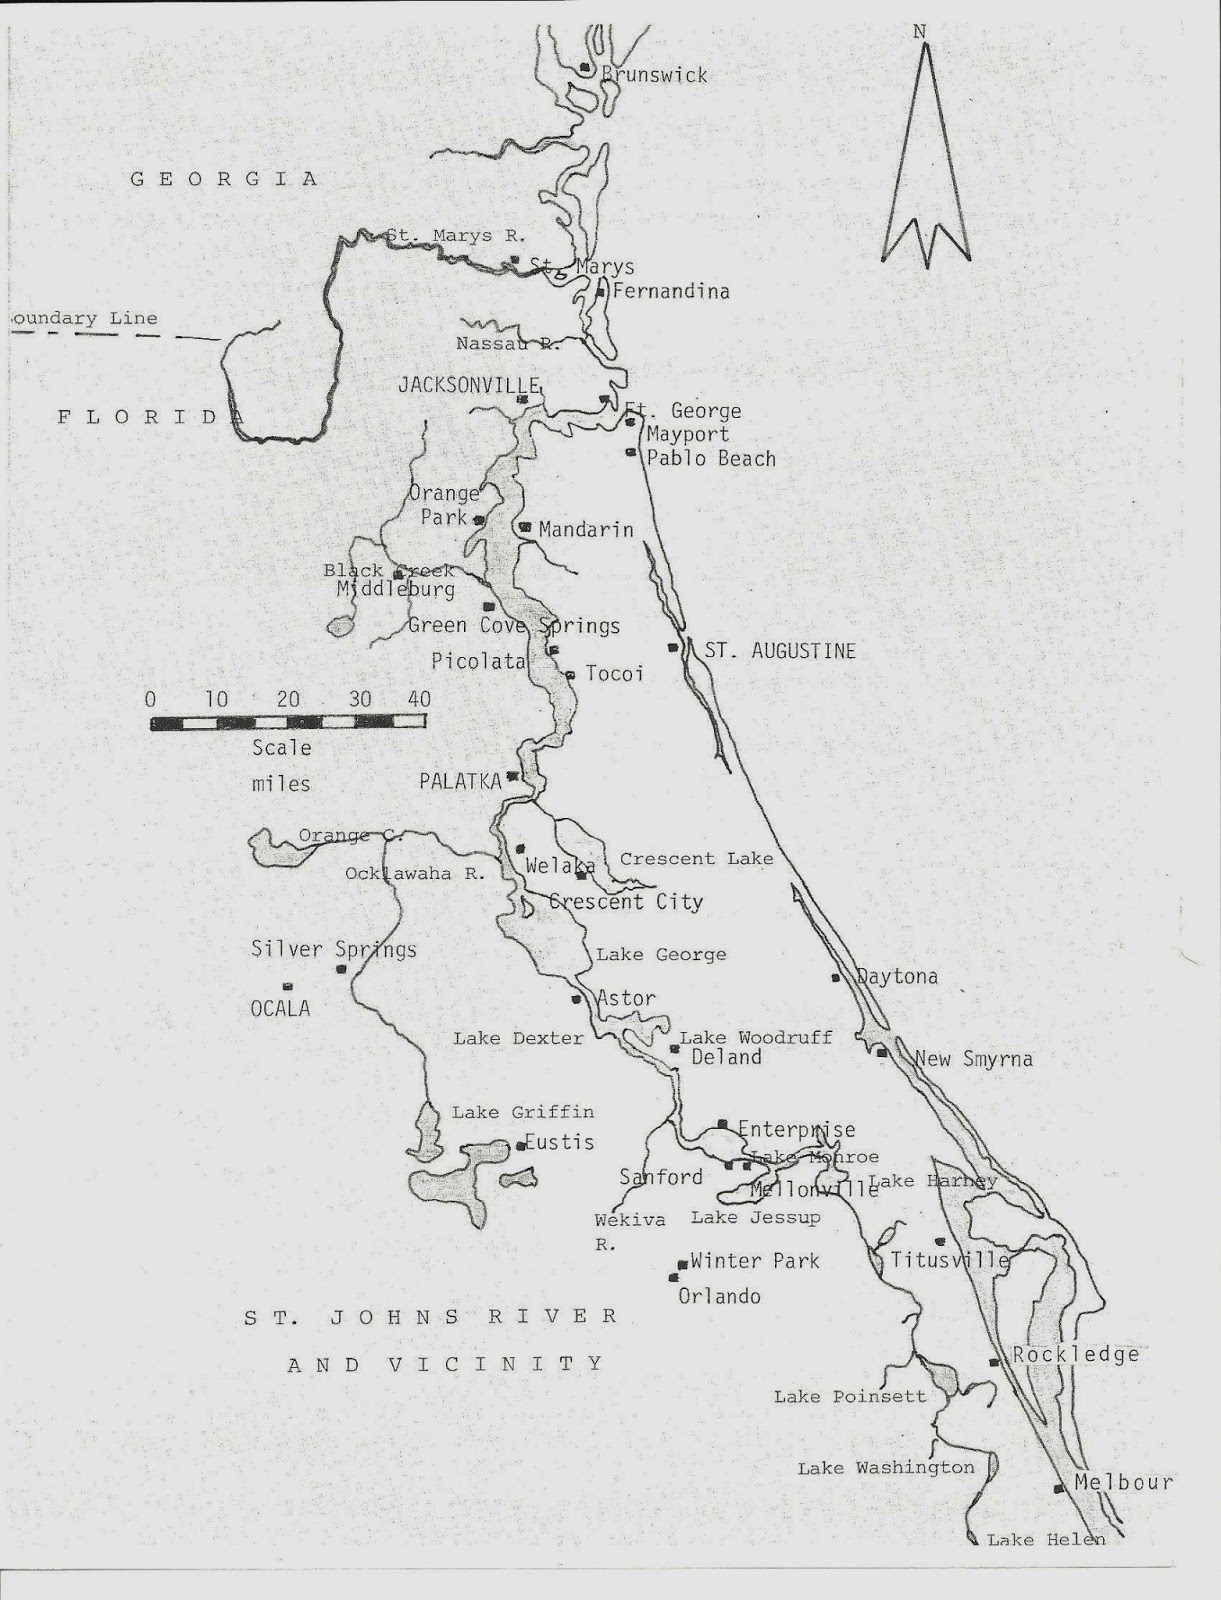 map of st johns river